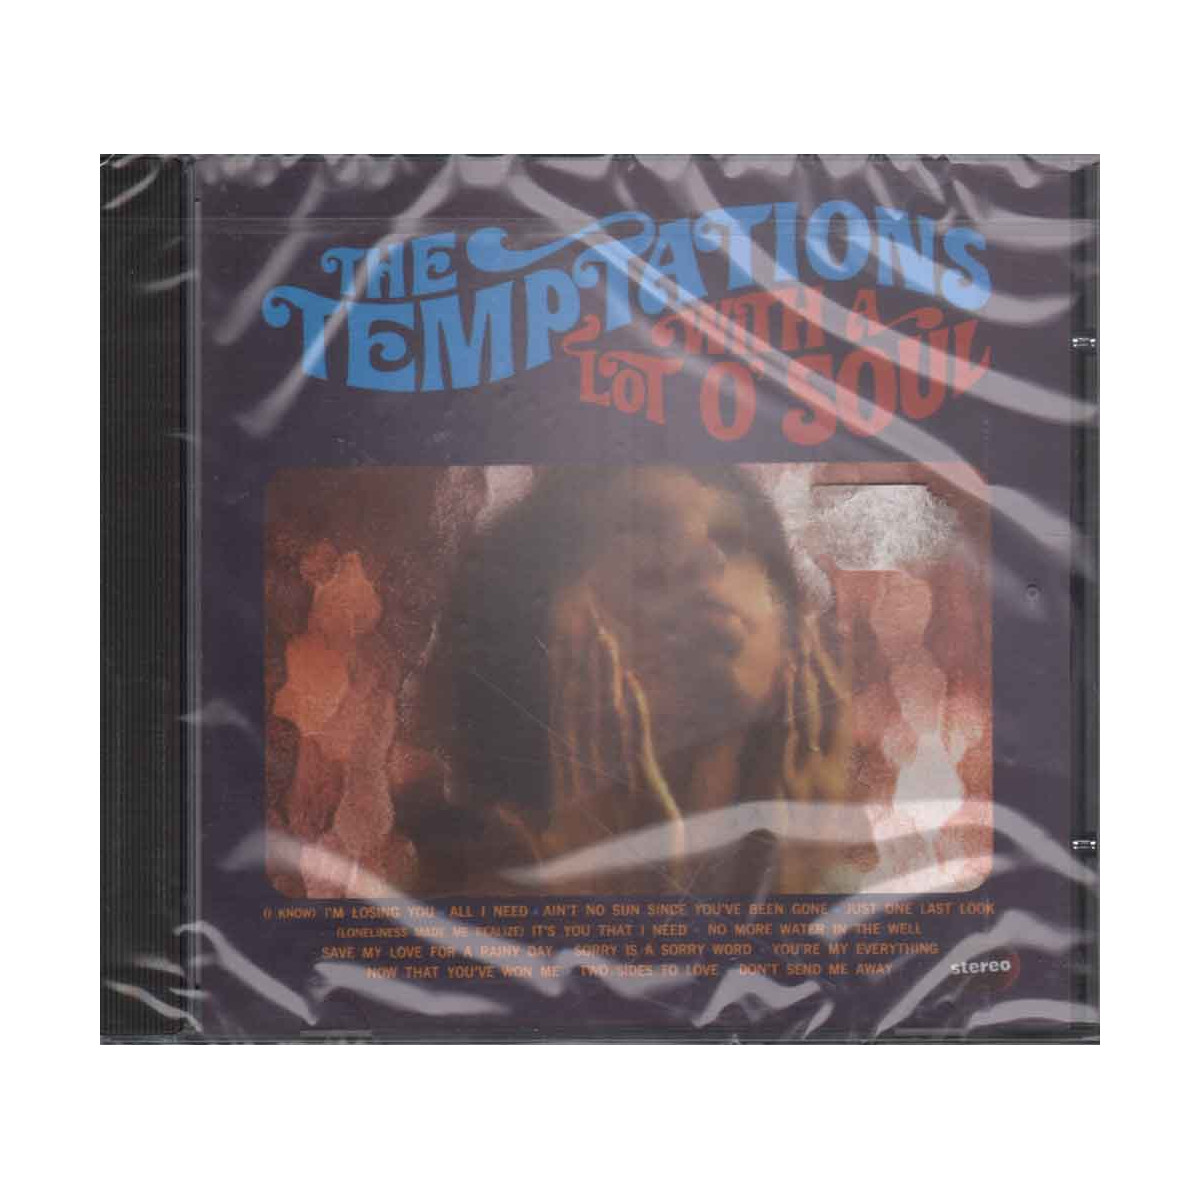 The Temptations  CD With A Lot O' Soul Nuovo Sigillato 0731453093225